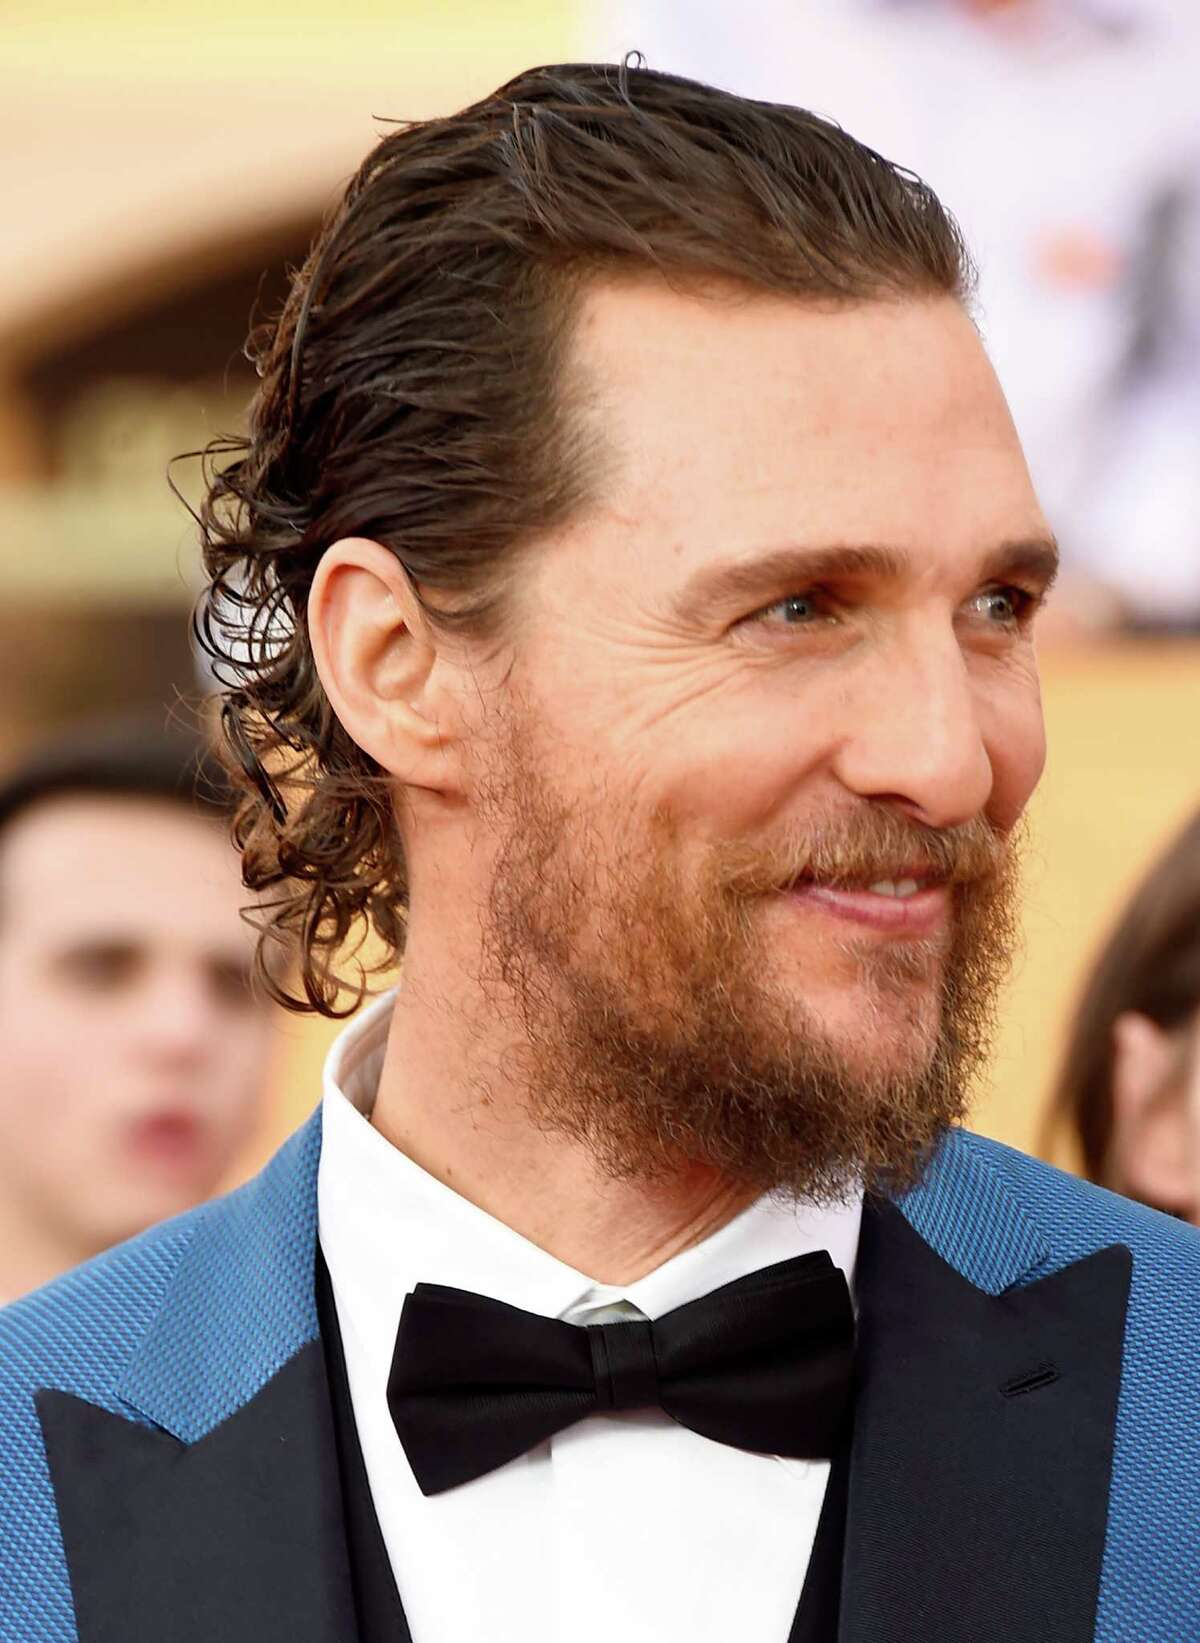 Actor Matthew McConaughey attend the 21st Annual Screen Actors Guild Awards at The Shrine Auditorium in Los Angeles, California. (Photo by Frazer Harrison/Getty Images)